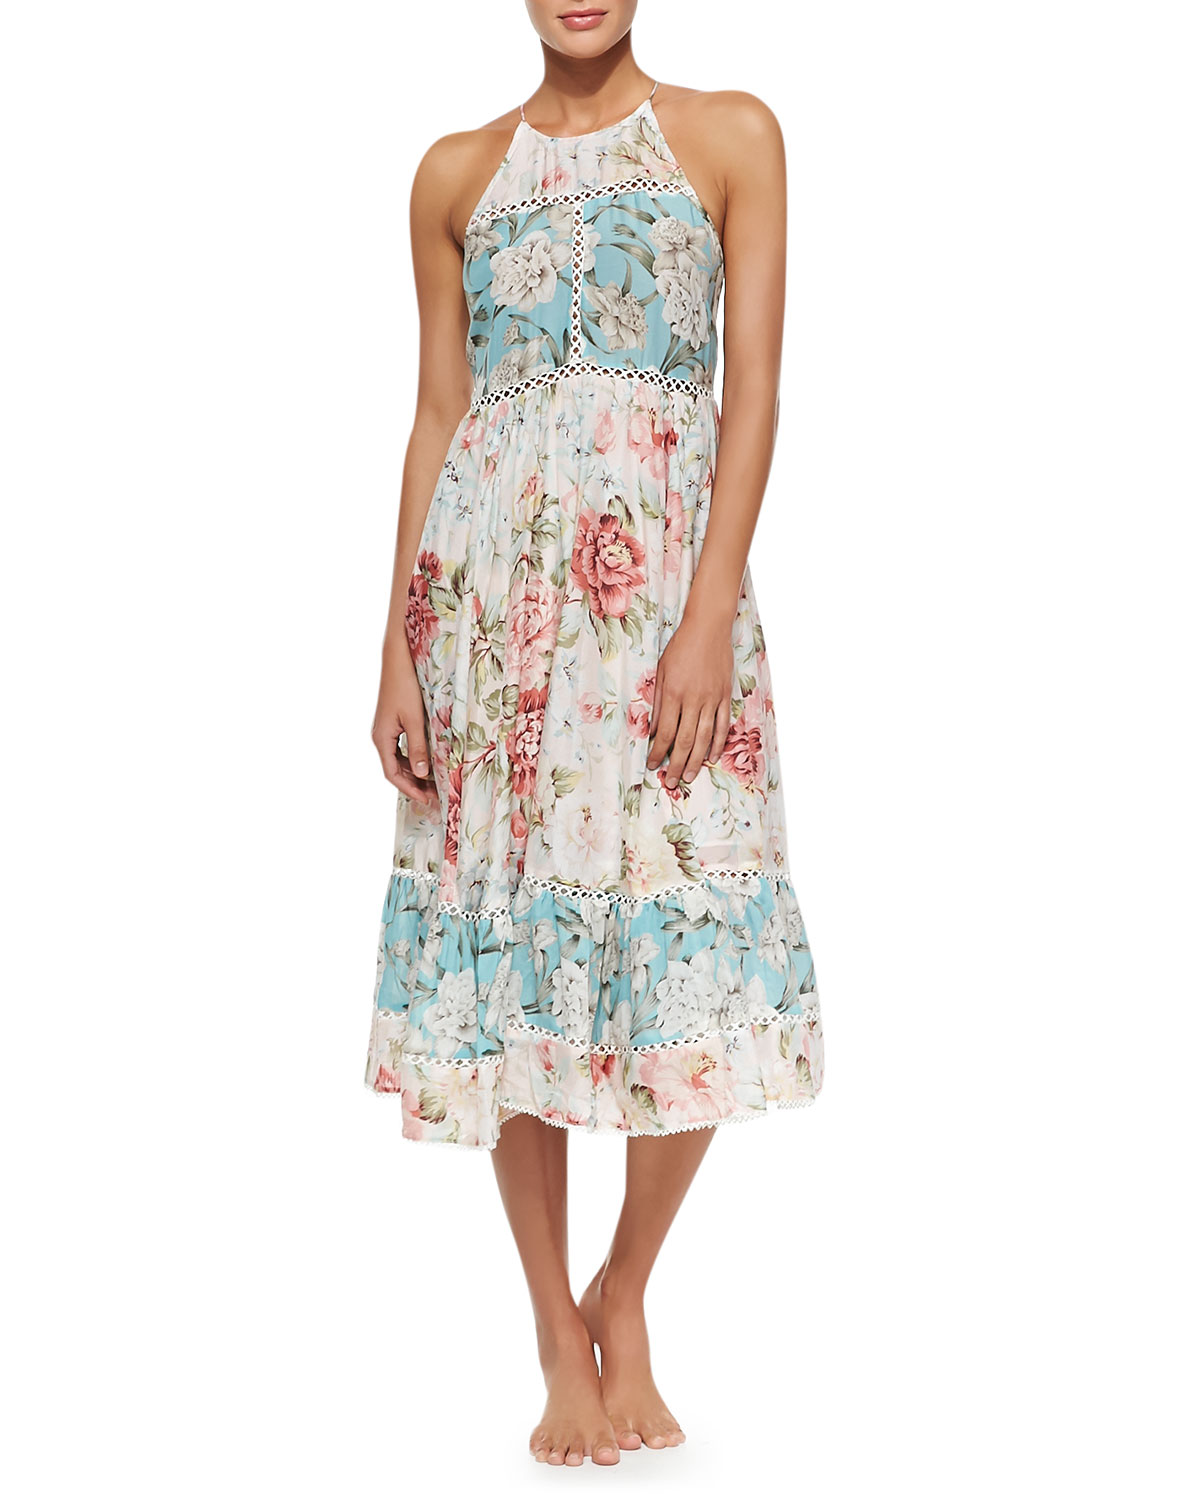 Georgia Floral-Print Sundress Coverup